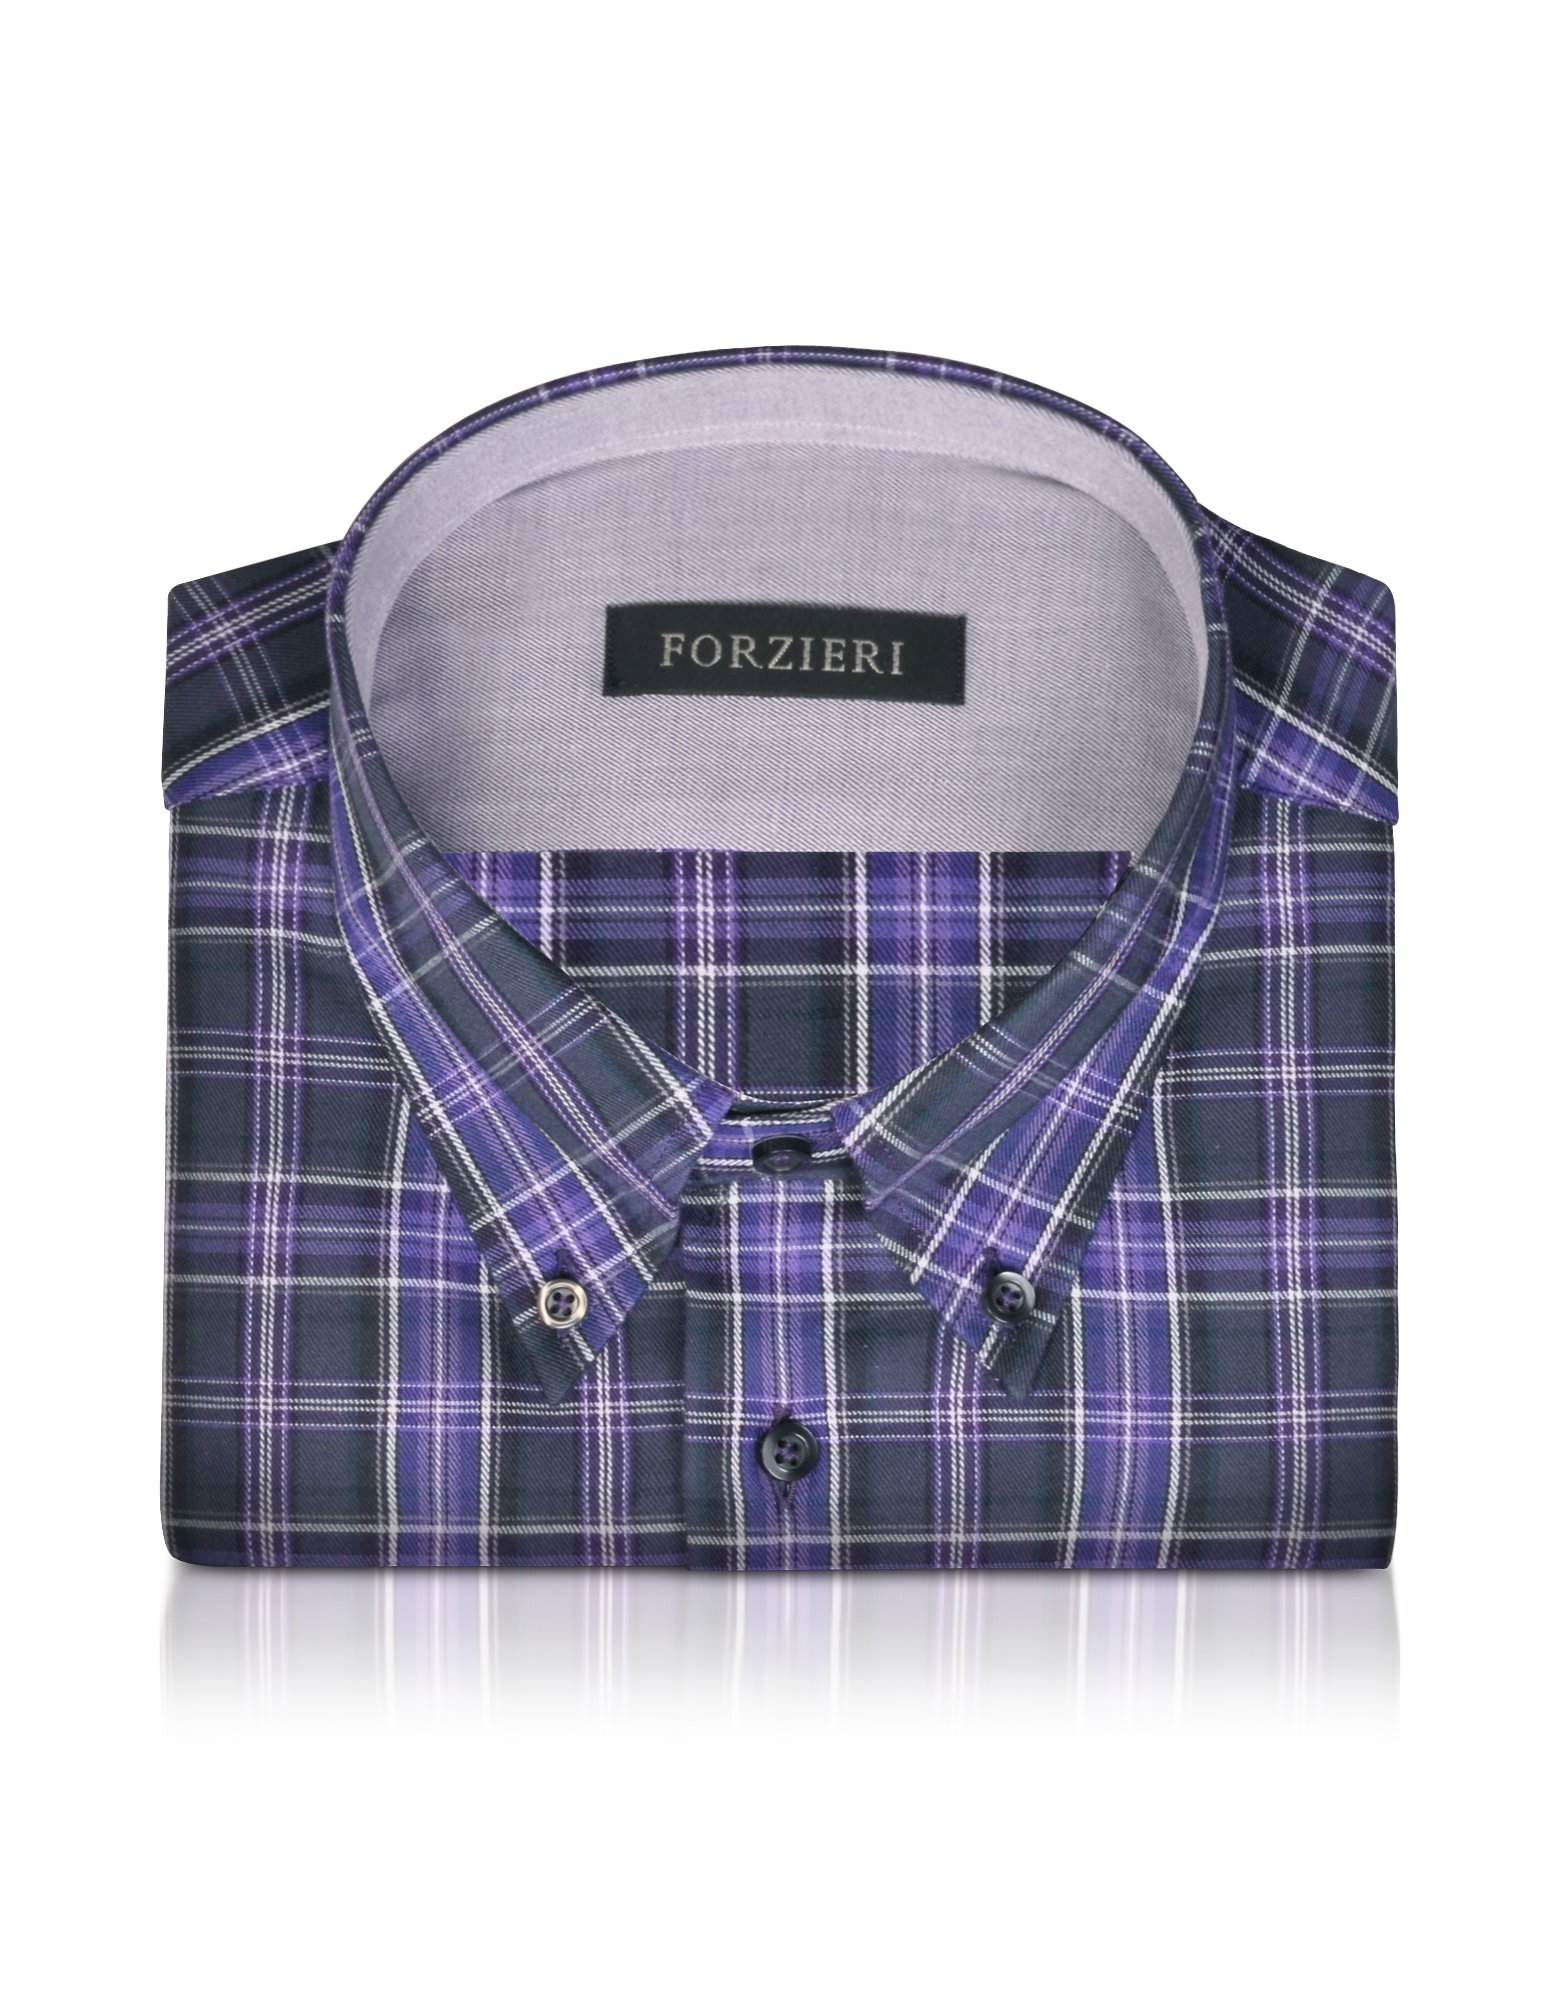 Forzieri Purple Plaid Slim Fit Button Down Cotton Dress